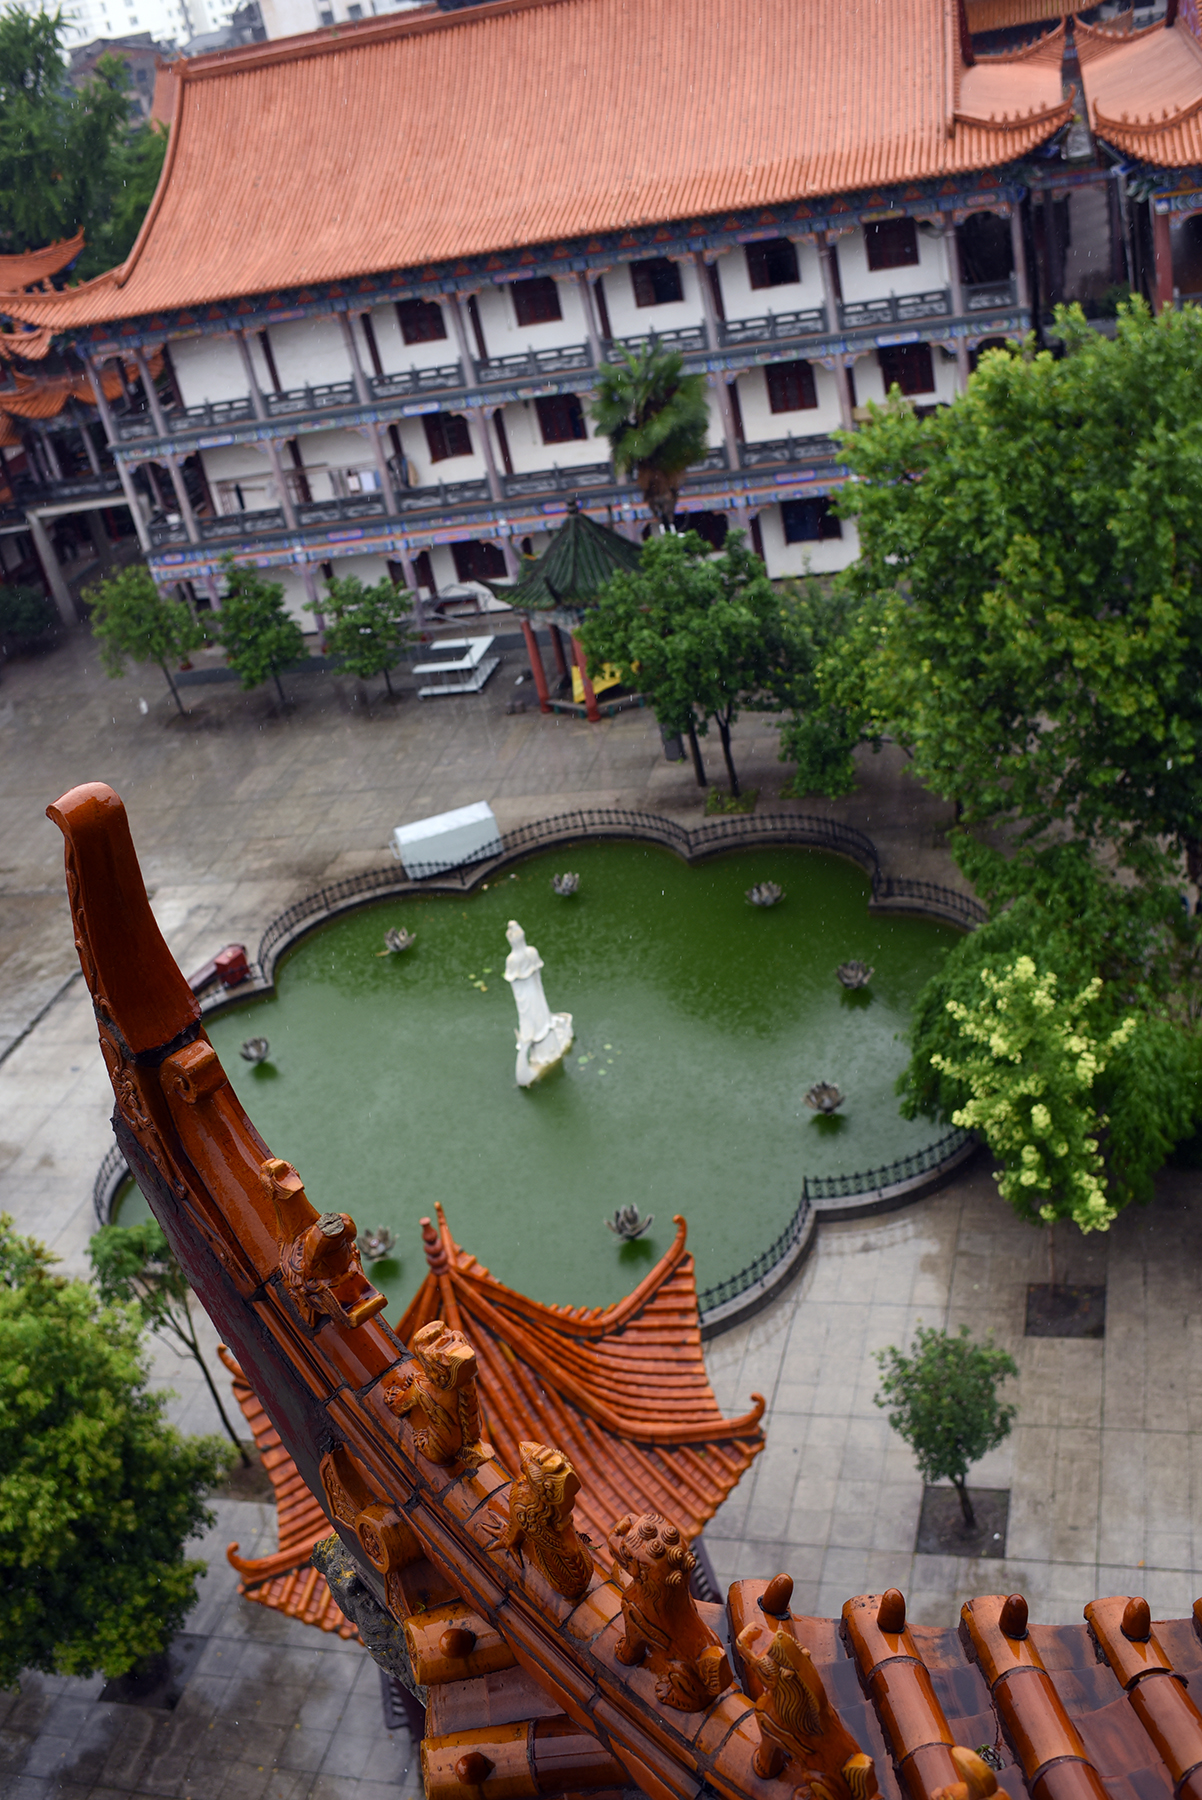 The view from atop the tower at Zhanghua Monastery,Jingzhou